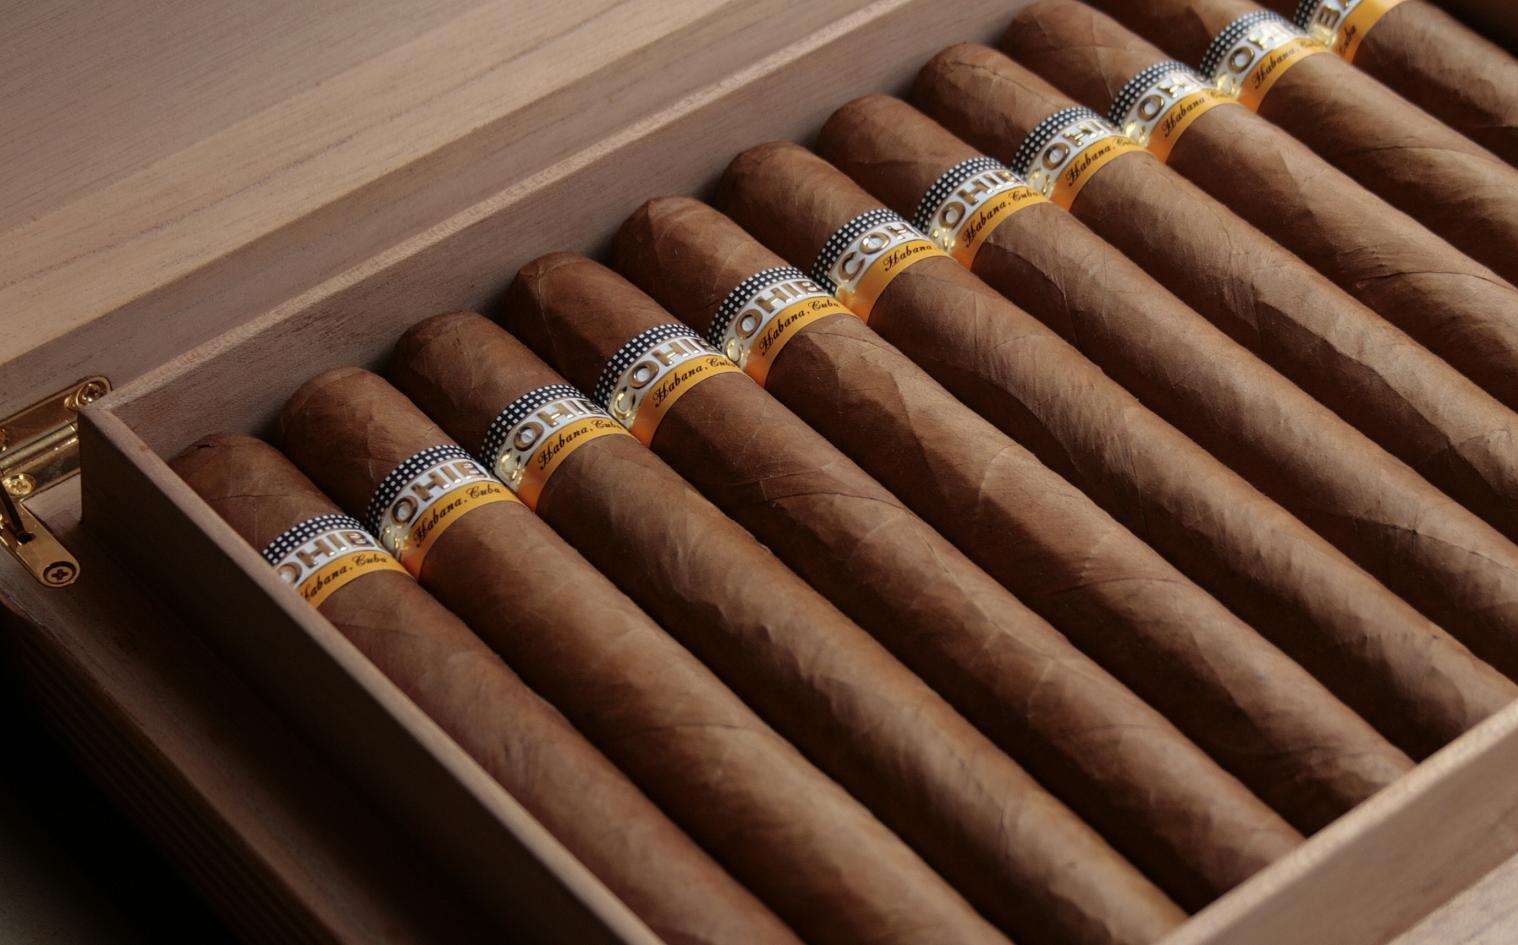 Cigar Background Cigars cohiba wallpaper 1518x945